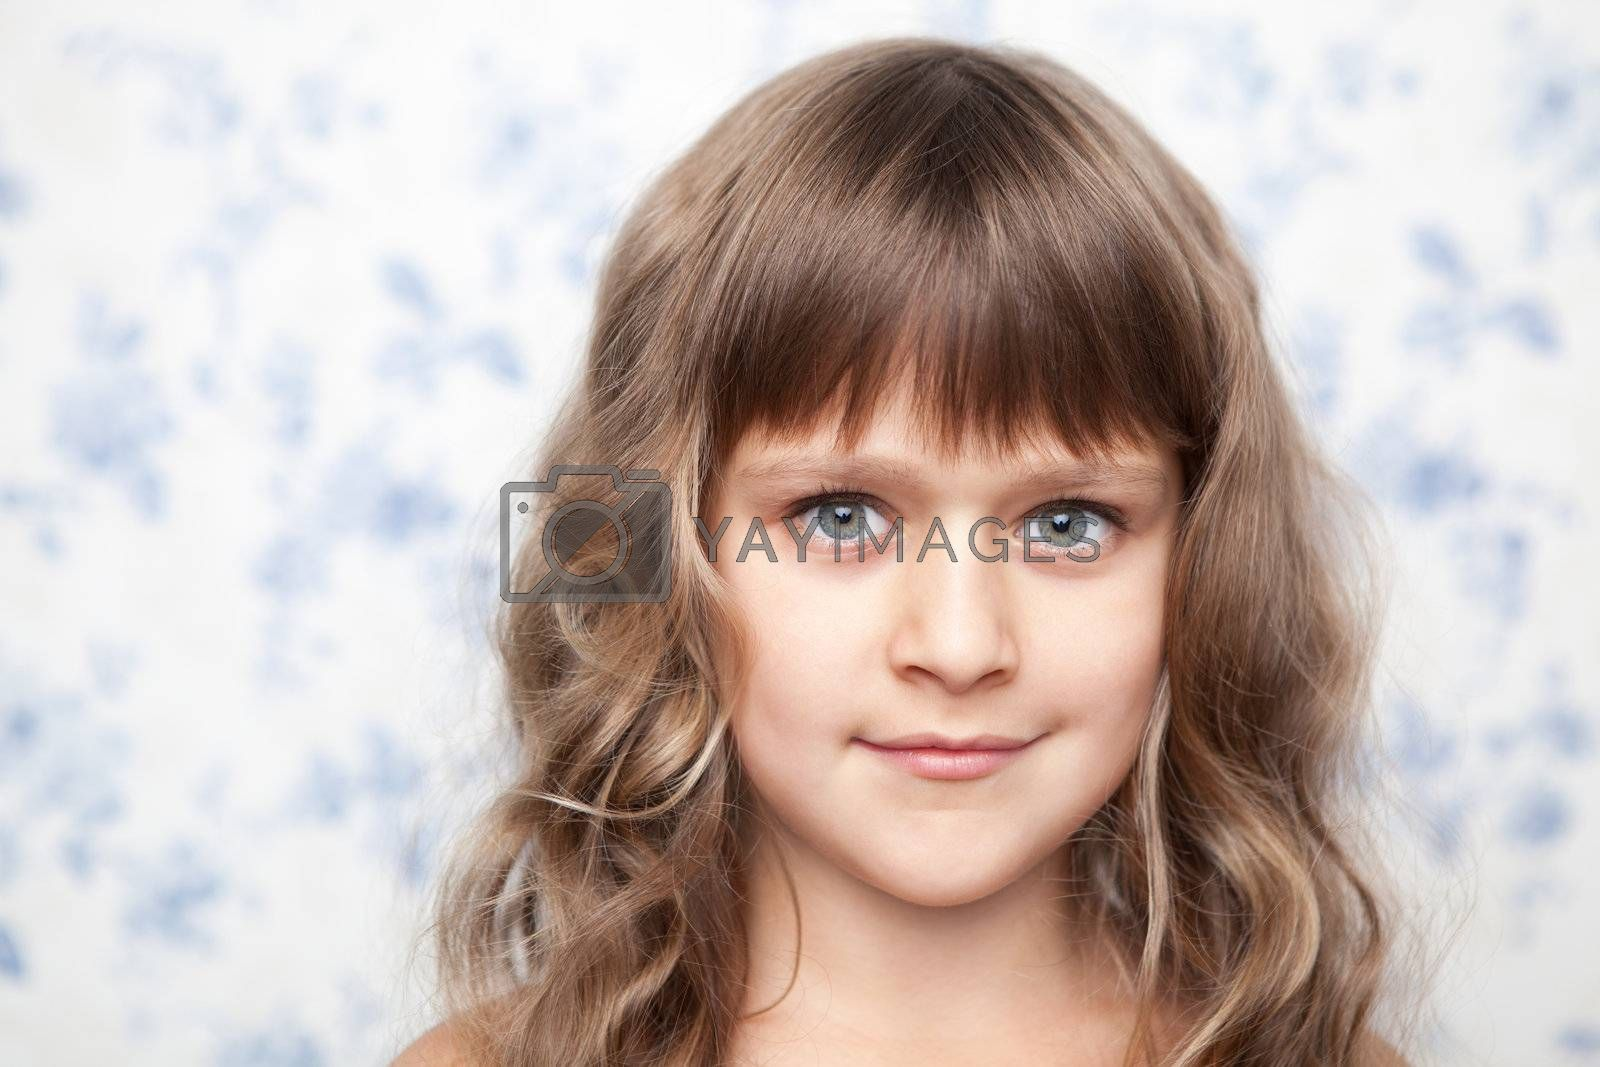 Portrait of sincere cheerful tender young blond girl child with grey eyes and wavy long hair looking at camera